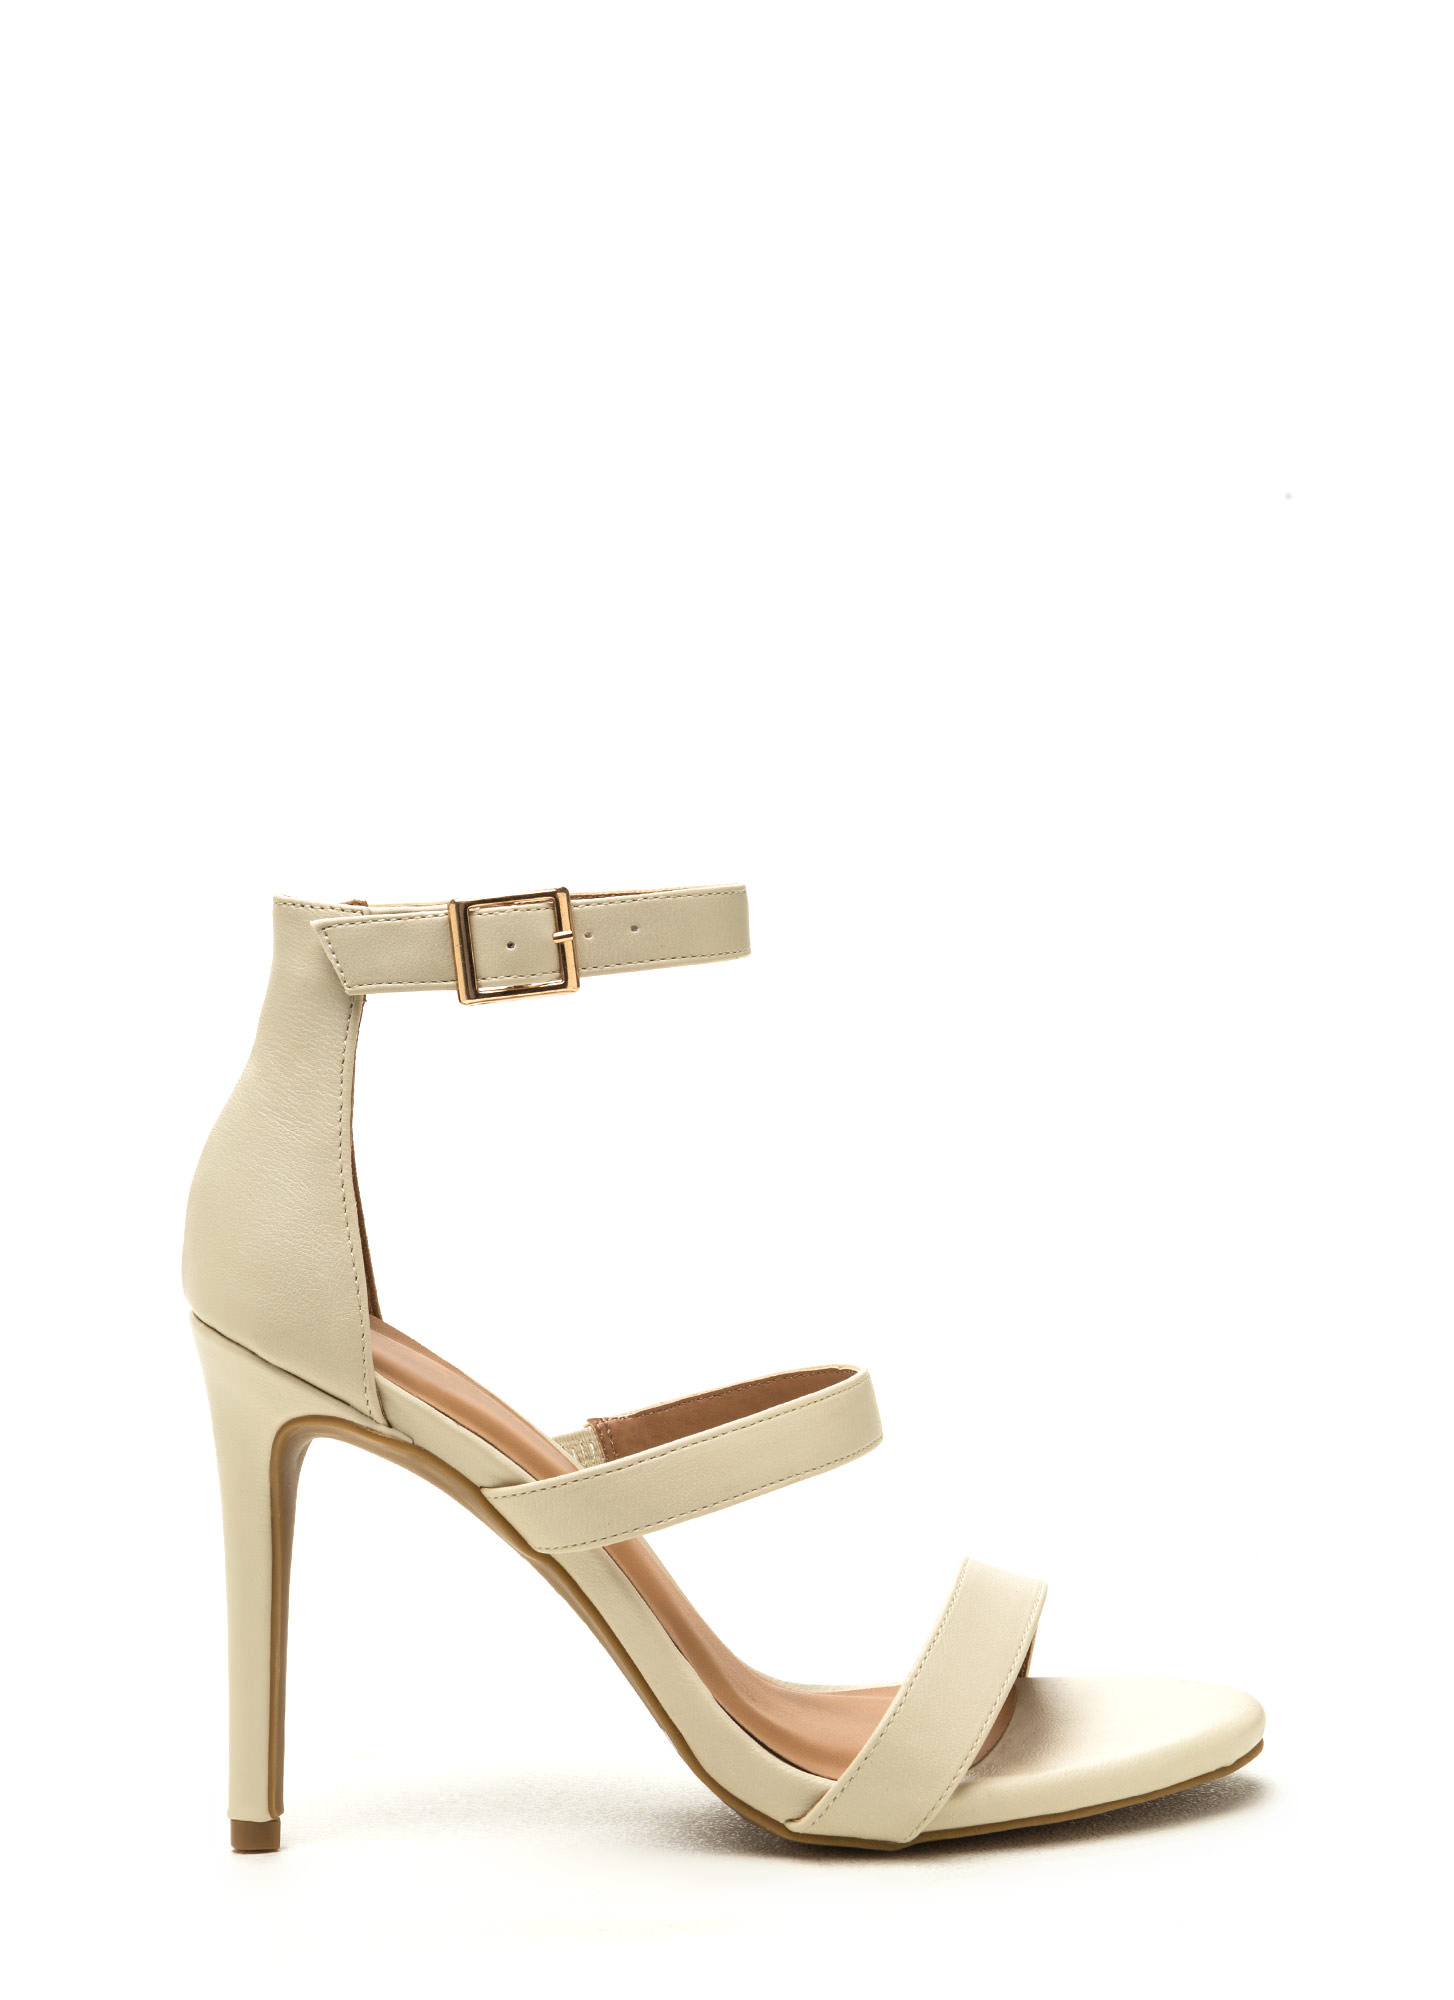 Triple Crown Strappy Faux Leather Heels IVORY